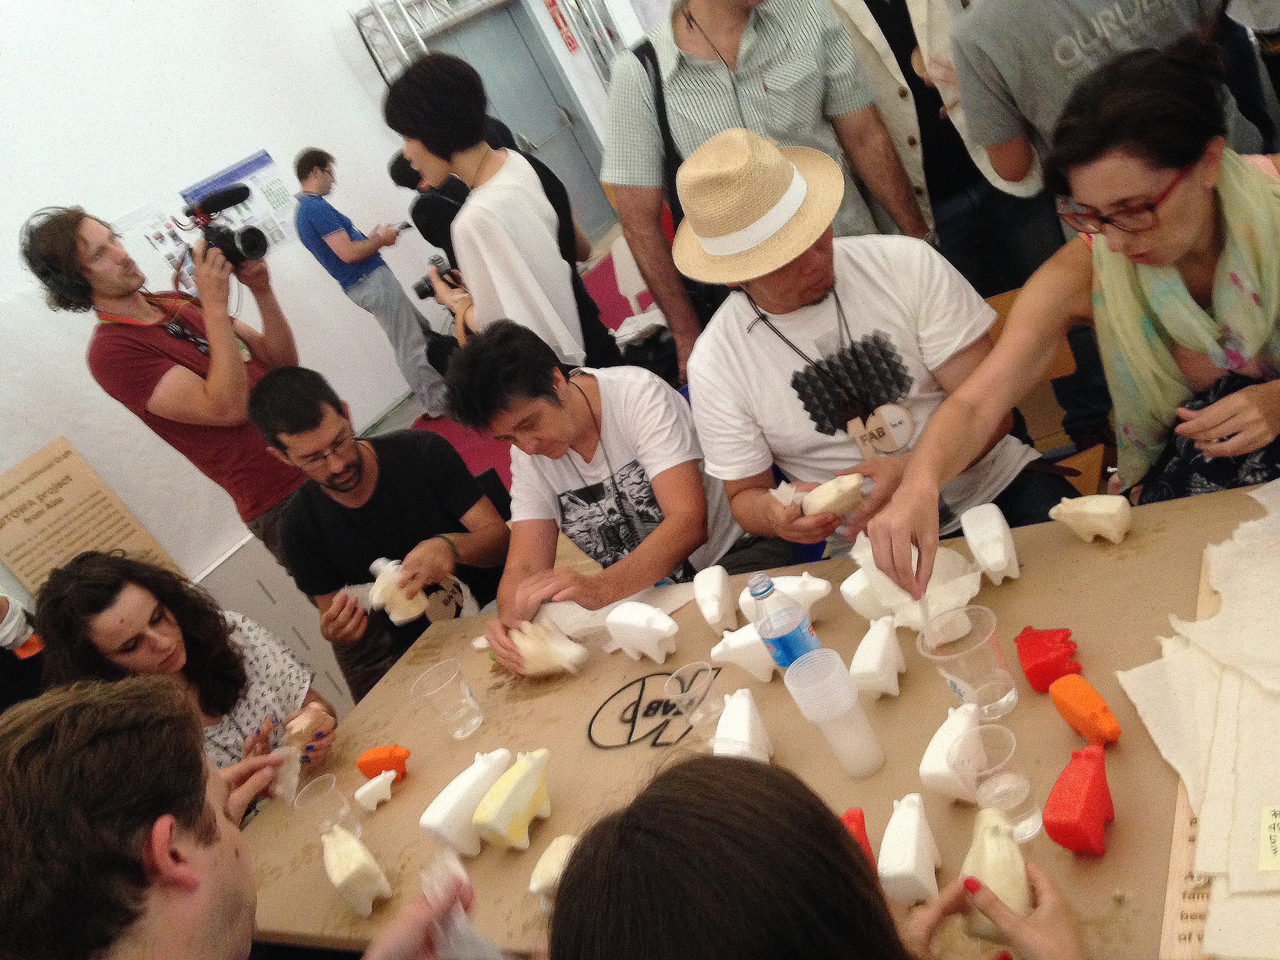 Hasekura 2.0 Workshop at 10th Fablab Conference, Barcelona, in July 2014. Akabeko x washi x 3D printer. The workshop aimed at playfully experimenting with new production processes for Japanese traditional crafts objects, applying advanced technologies and cross-cultures collaborations.